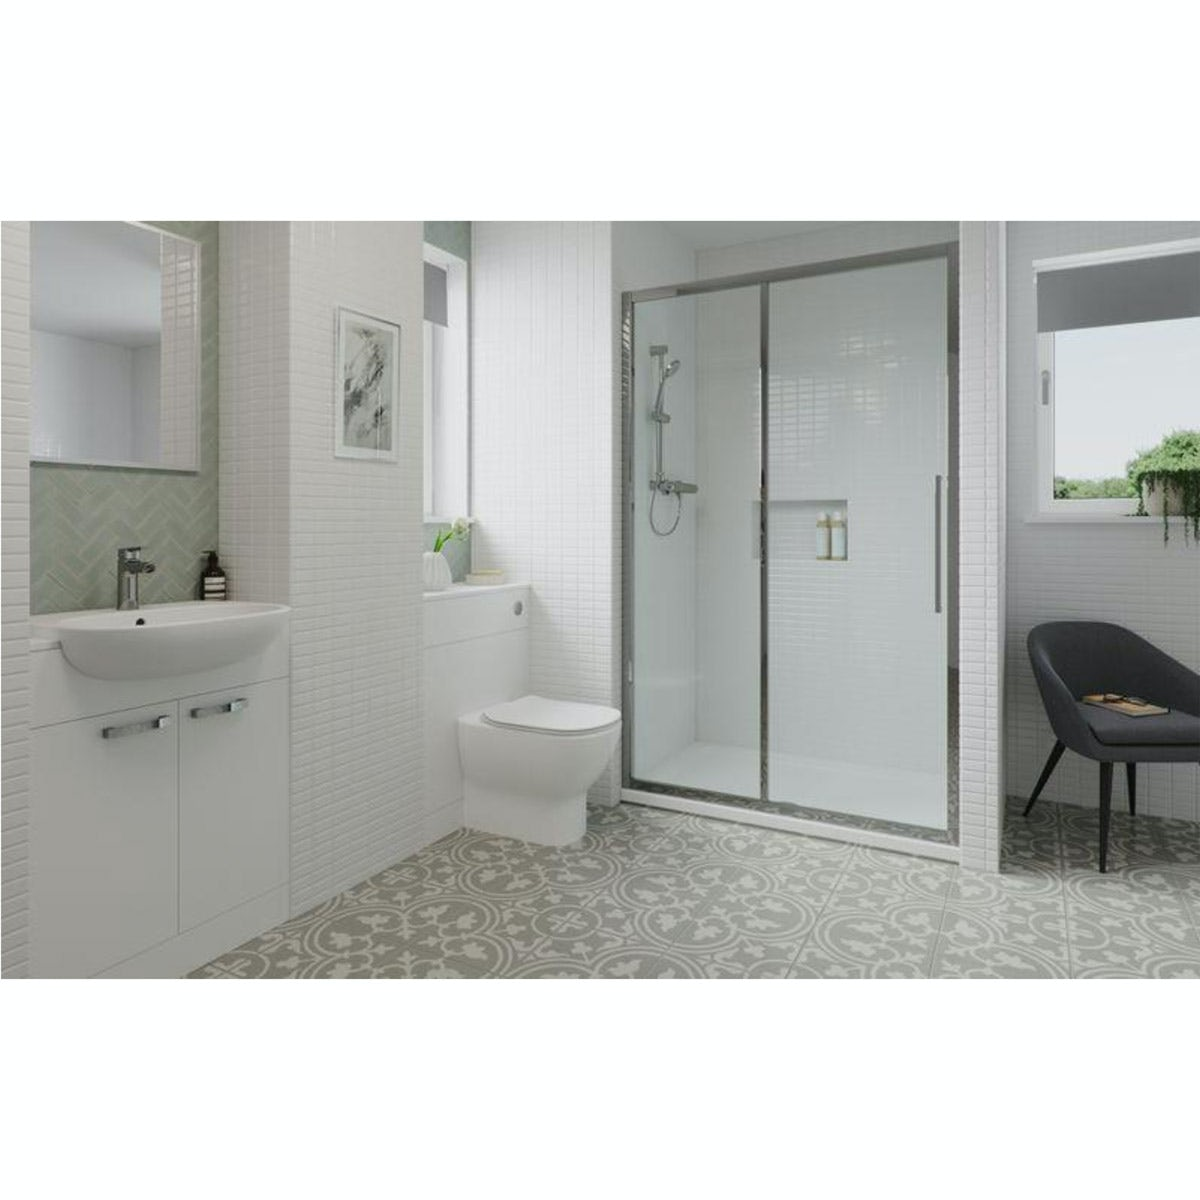 Ideal Standard Tesi ensuite suite with enclosure, furniture set, tray, shower, taps and waste